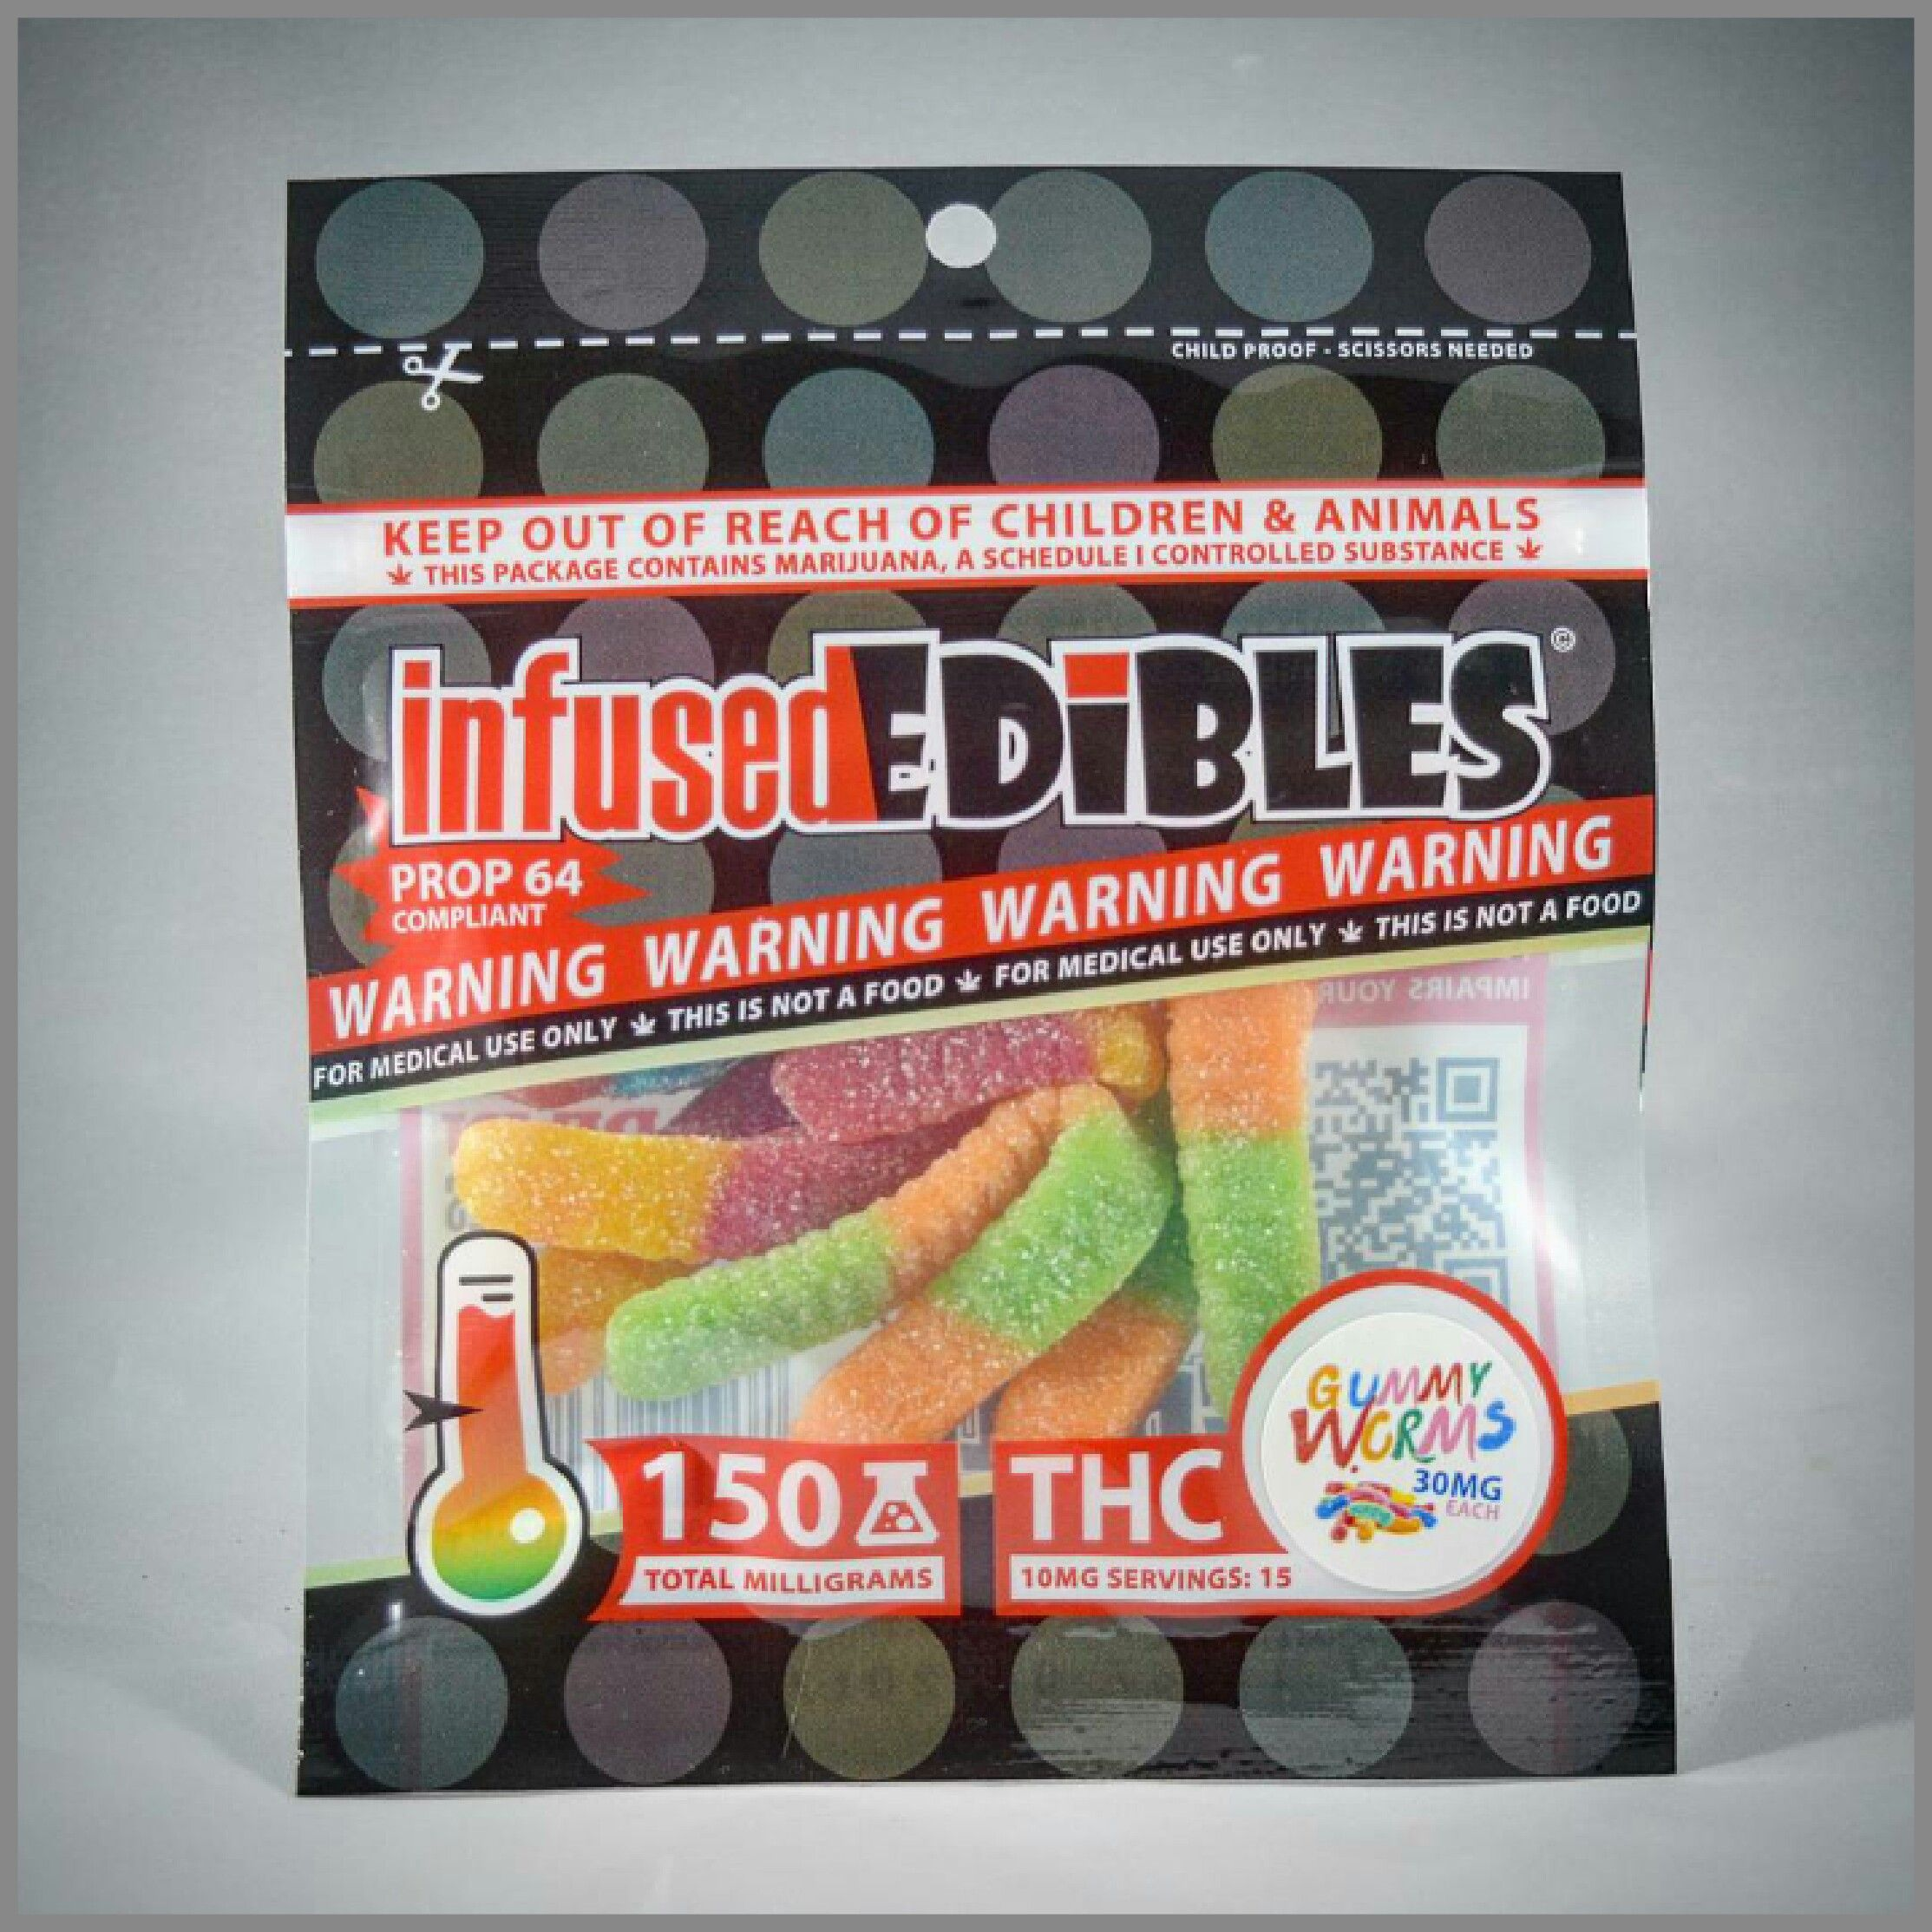 Gummy Worms CBD - Infused Edibles - 150mg